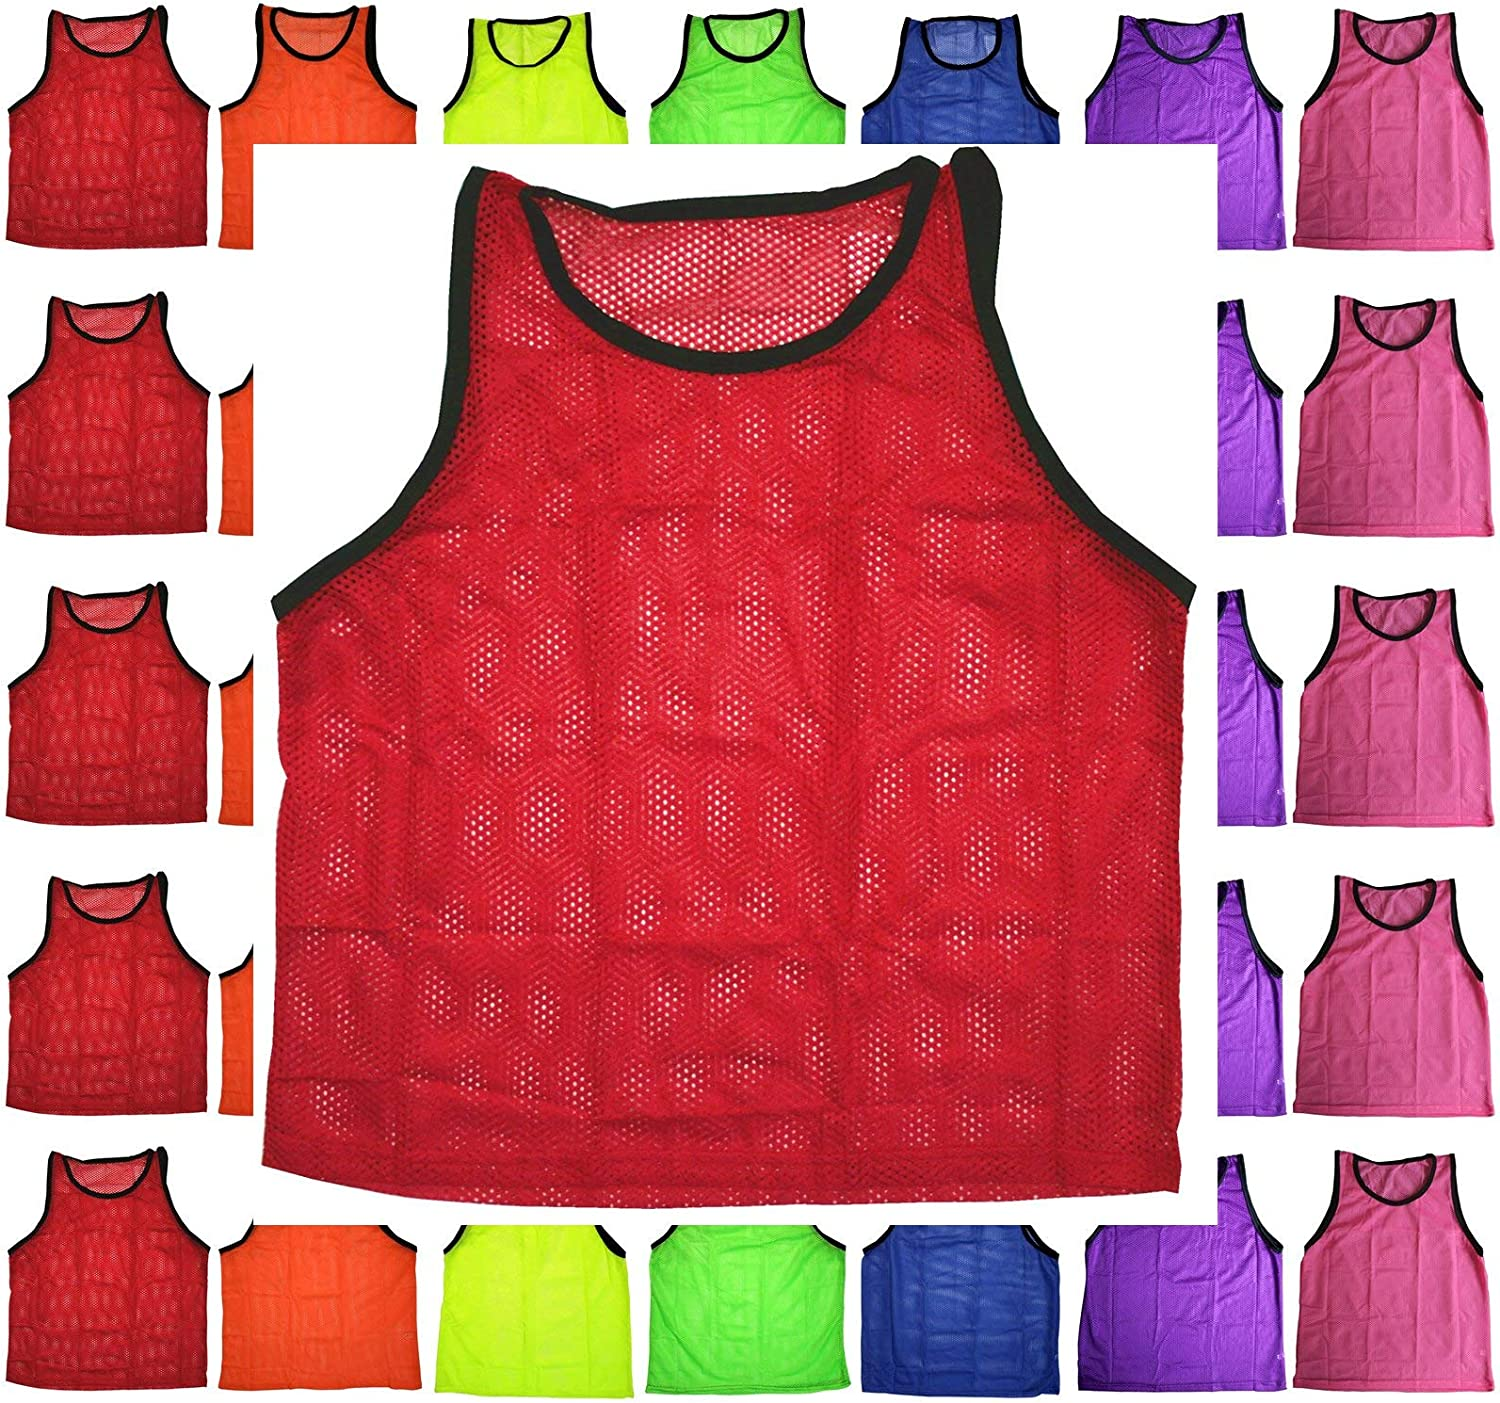 BlueDot Trading Adult Sports Pinnie Scrimmage Training Vest, Green, 12 Pack : Football Flak Jackets : Clothing